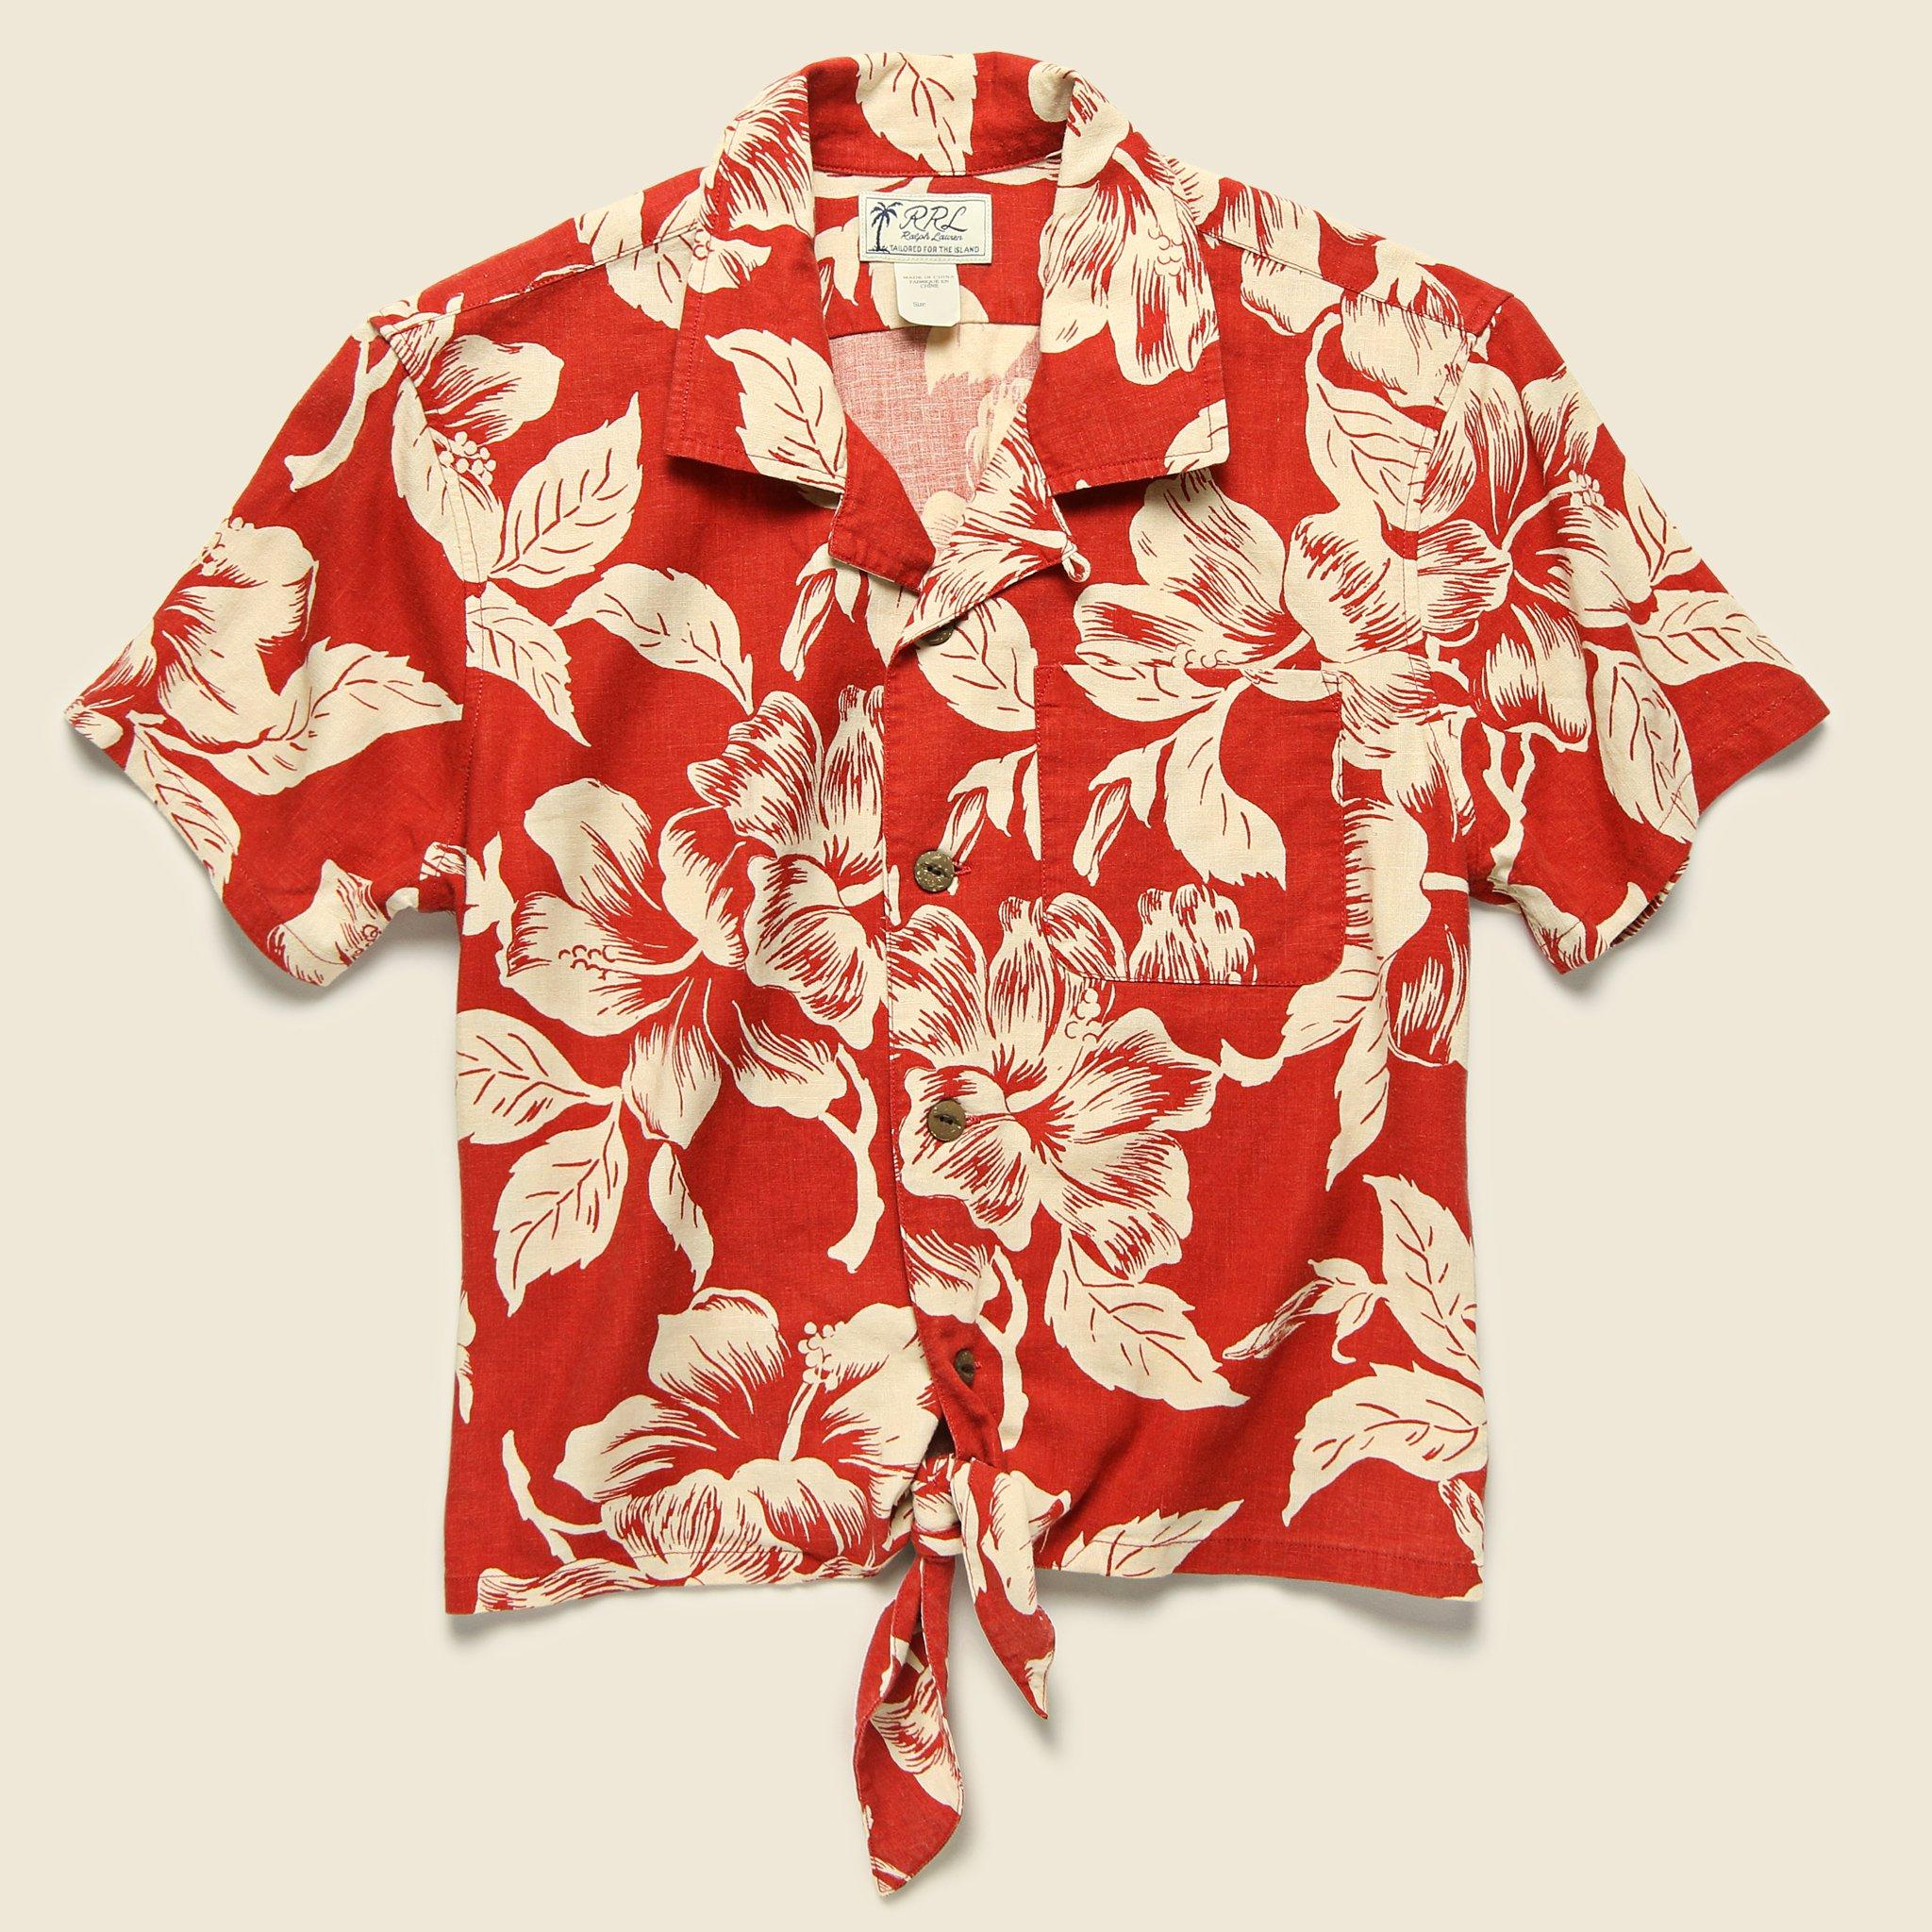 51d68ac0 Lyst - RRL Laura Aloha Shirt - Red/cream in Red for Men